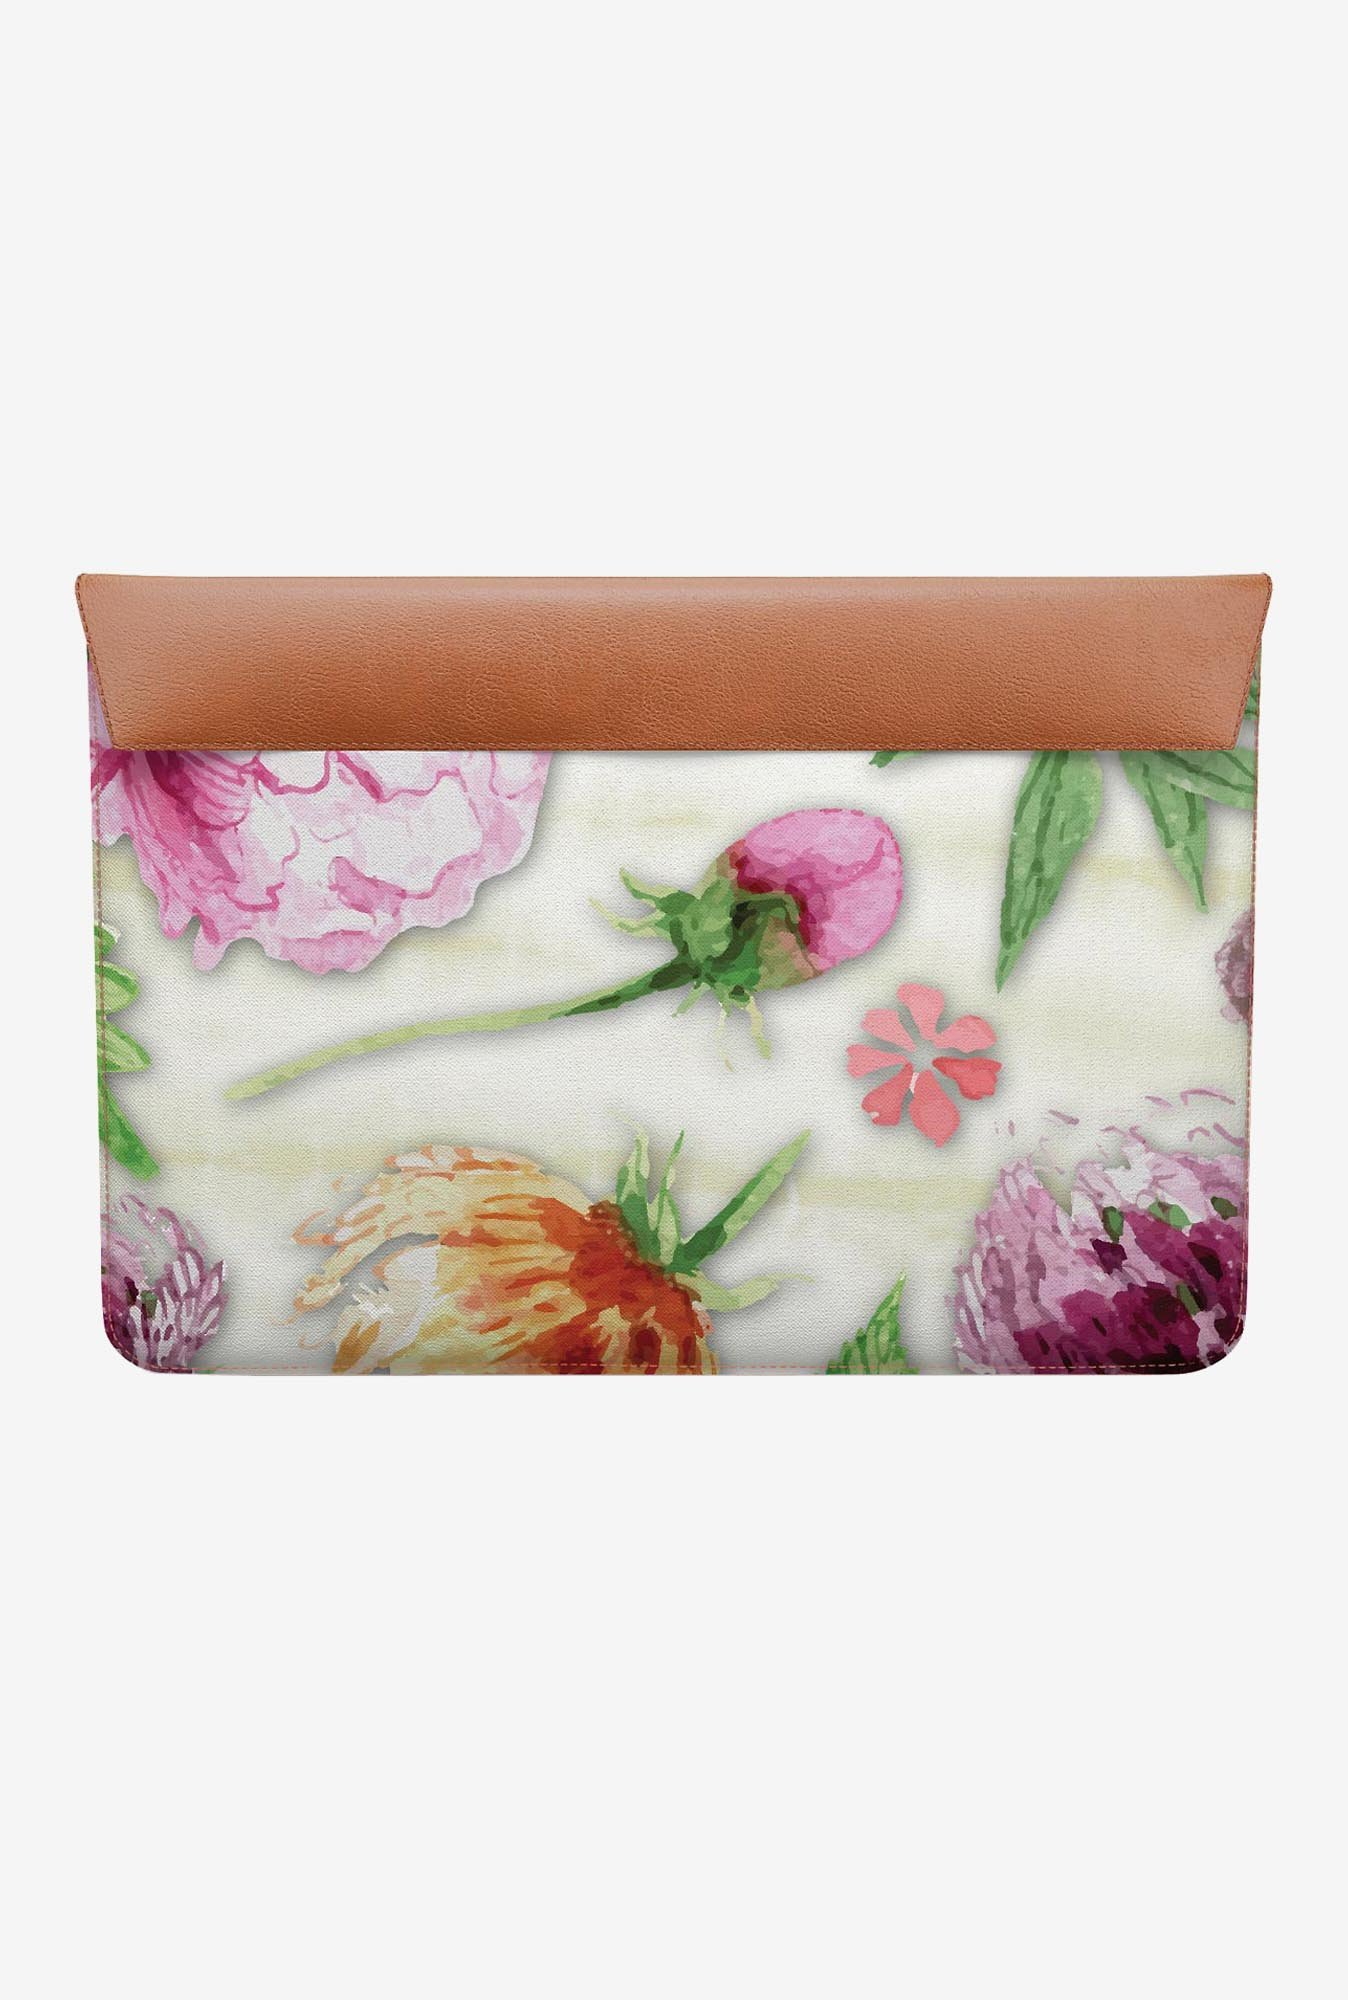 DailyObjects Floral Colours MacBook Air 11 Envelope Sleeve